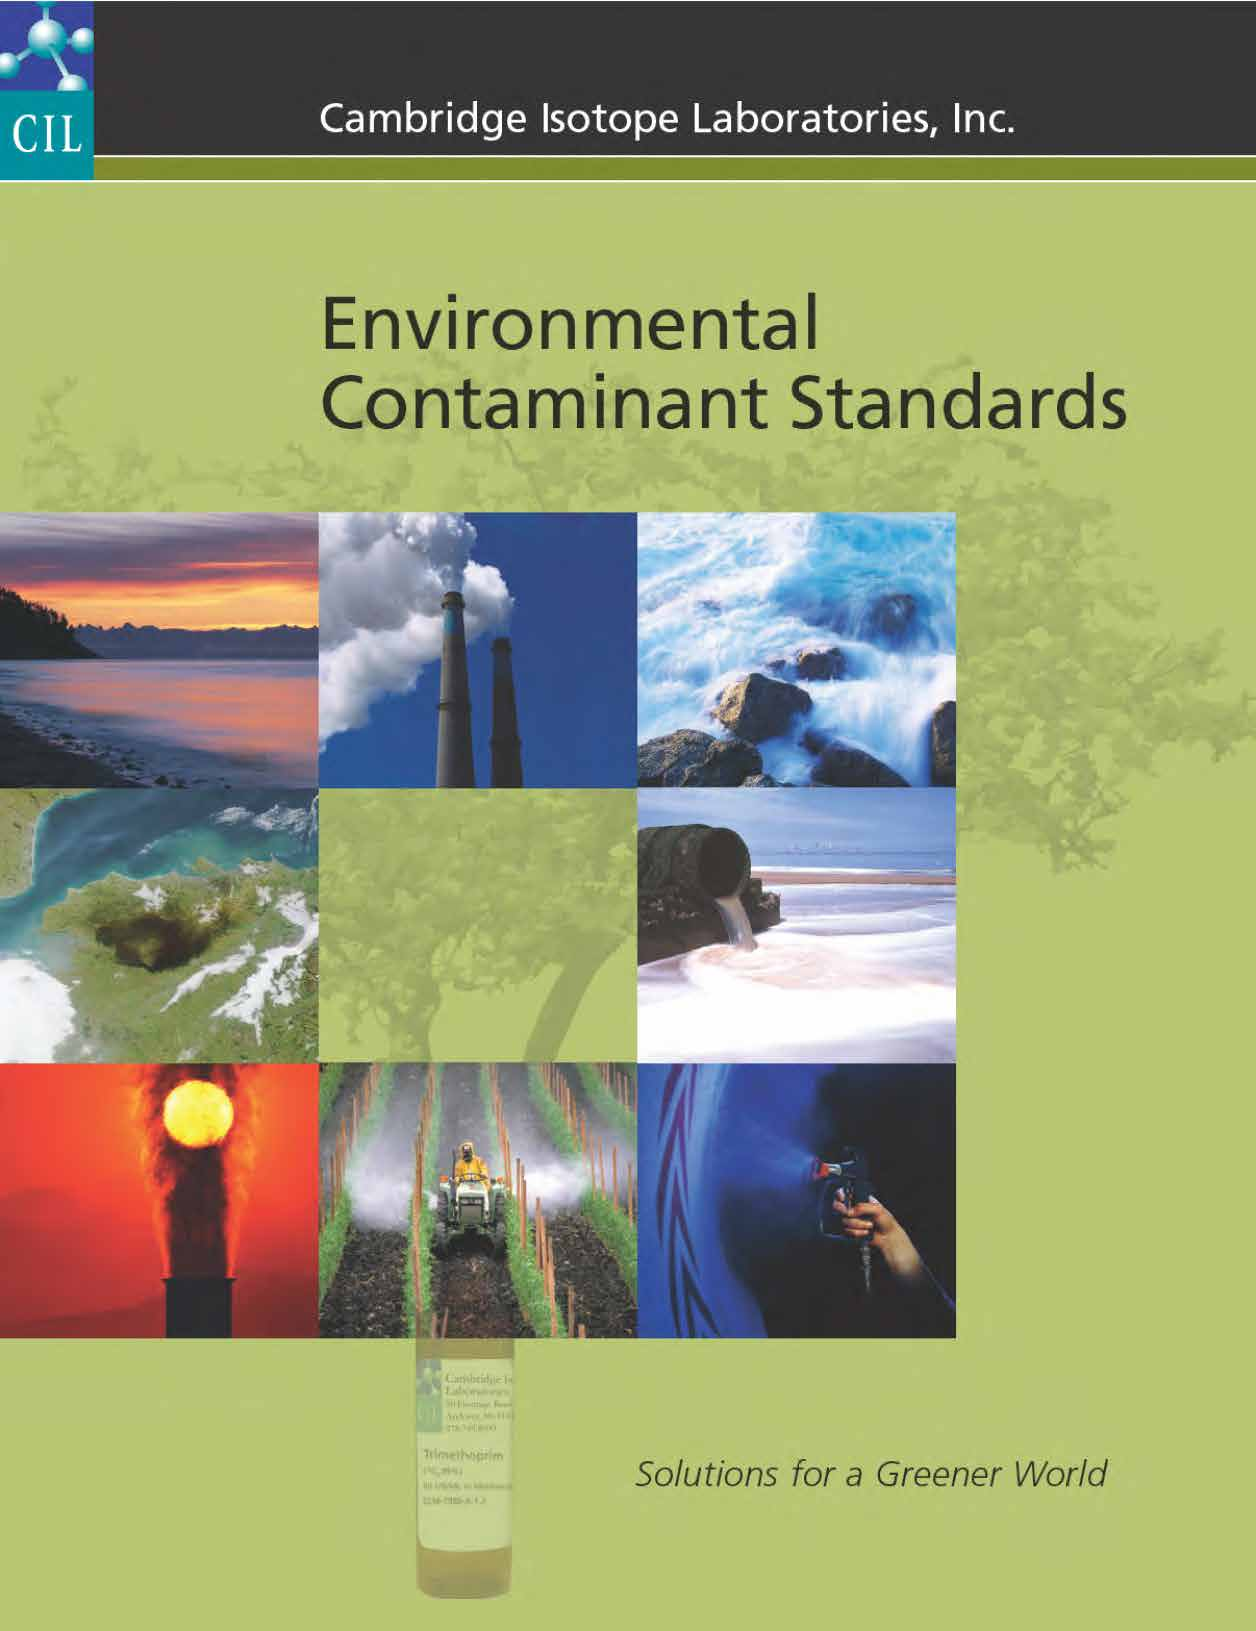 CIL - Environmental Standards